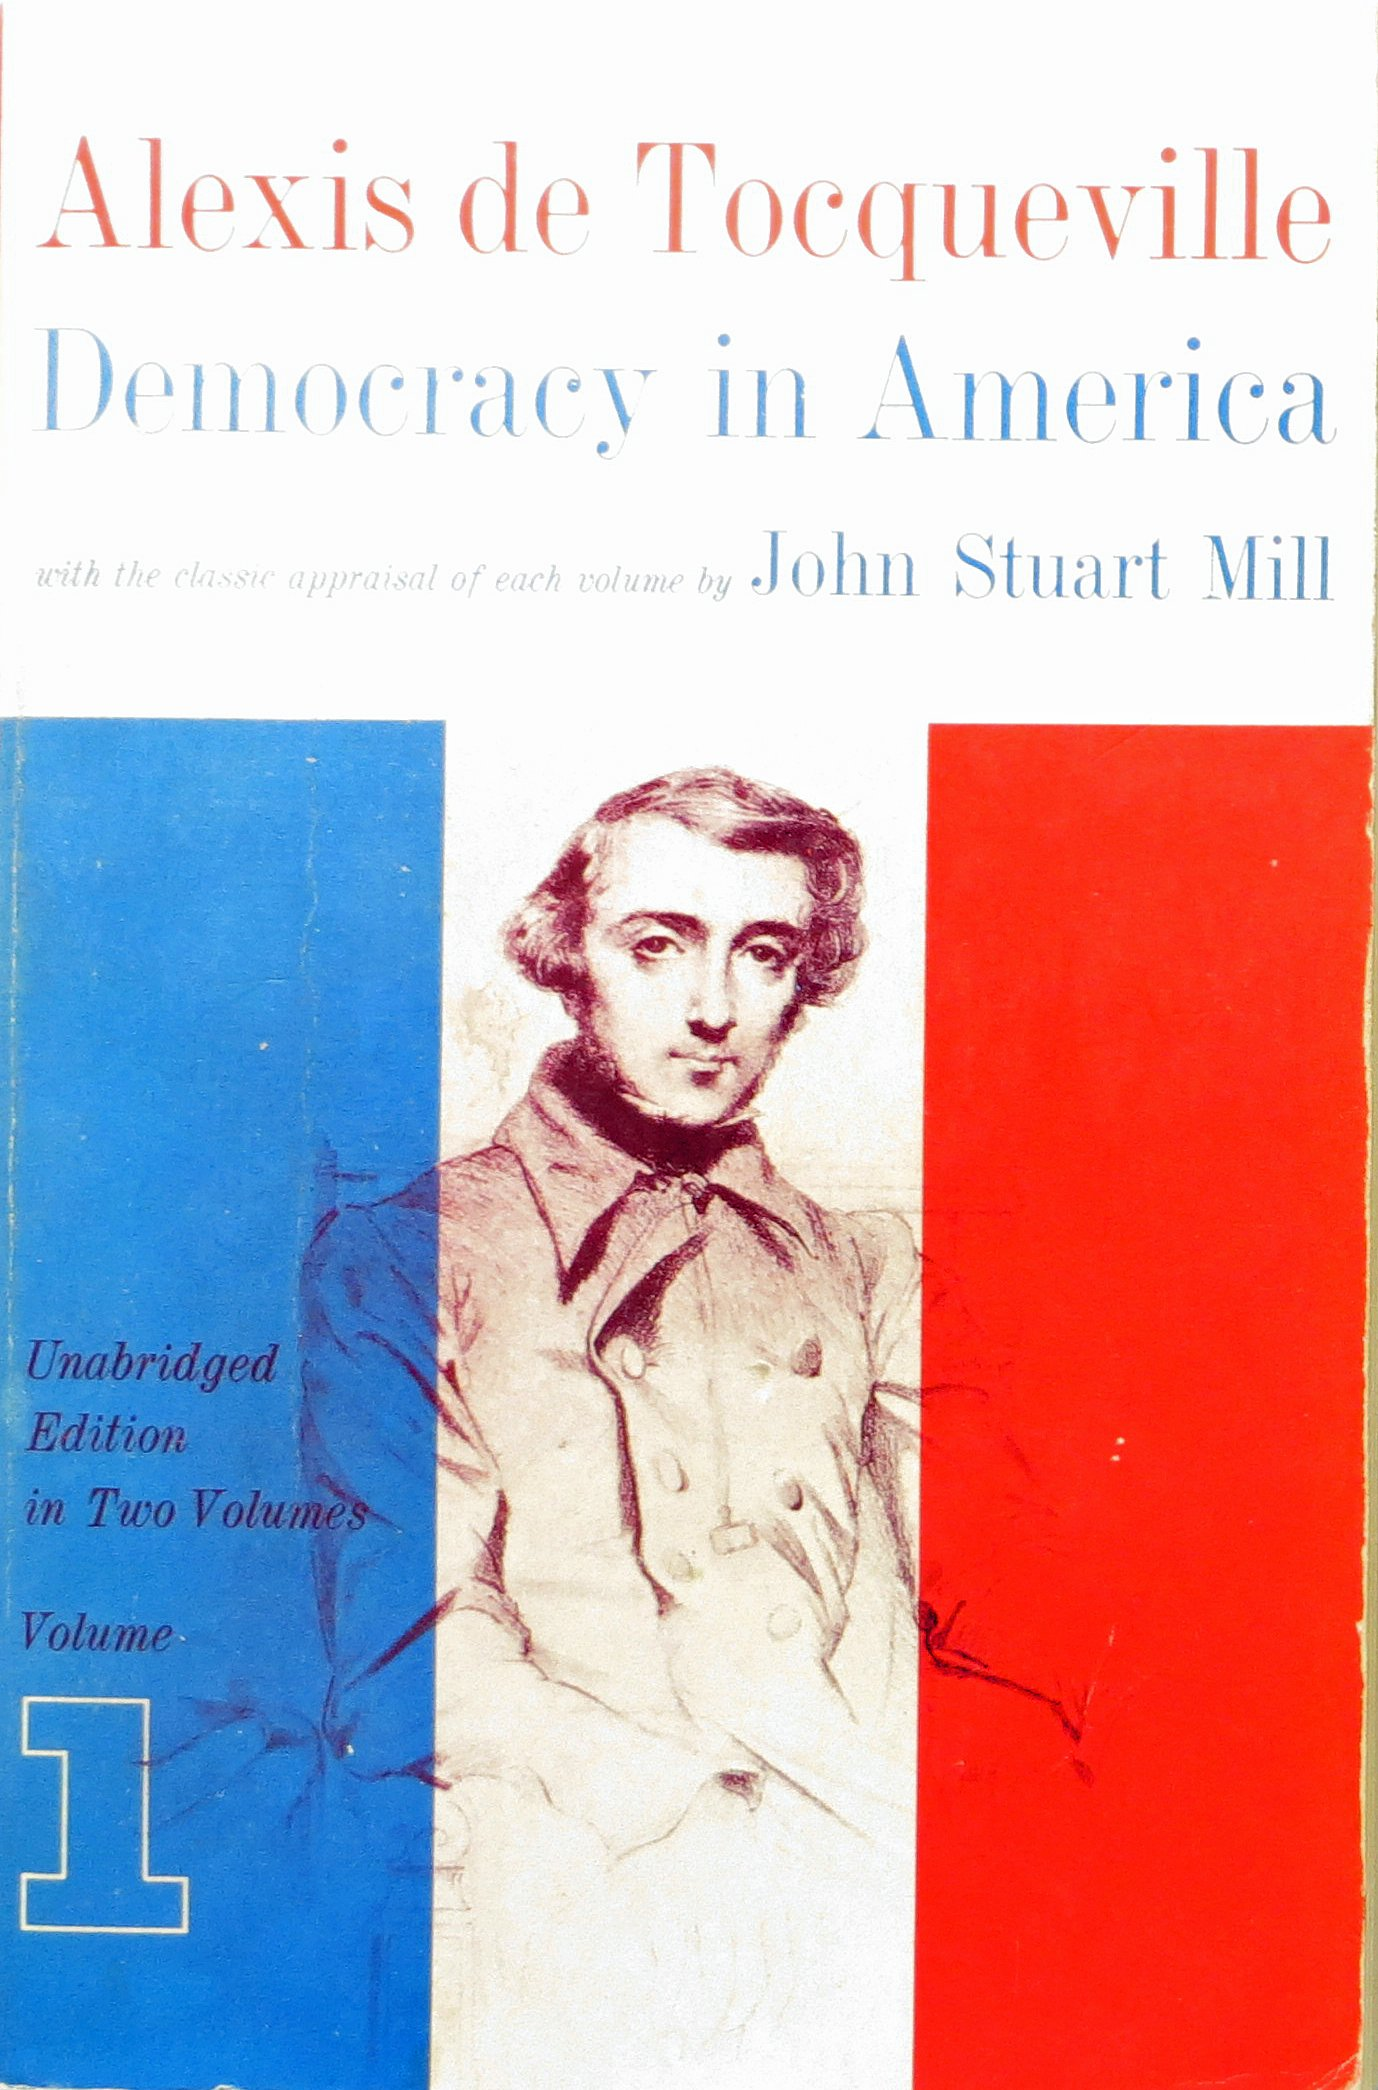 Democracy in America (Schocken paperbacks): Alexis de Tocqueville:  9780805200133: Amazon.com: Books